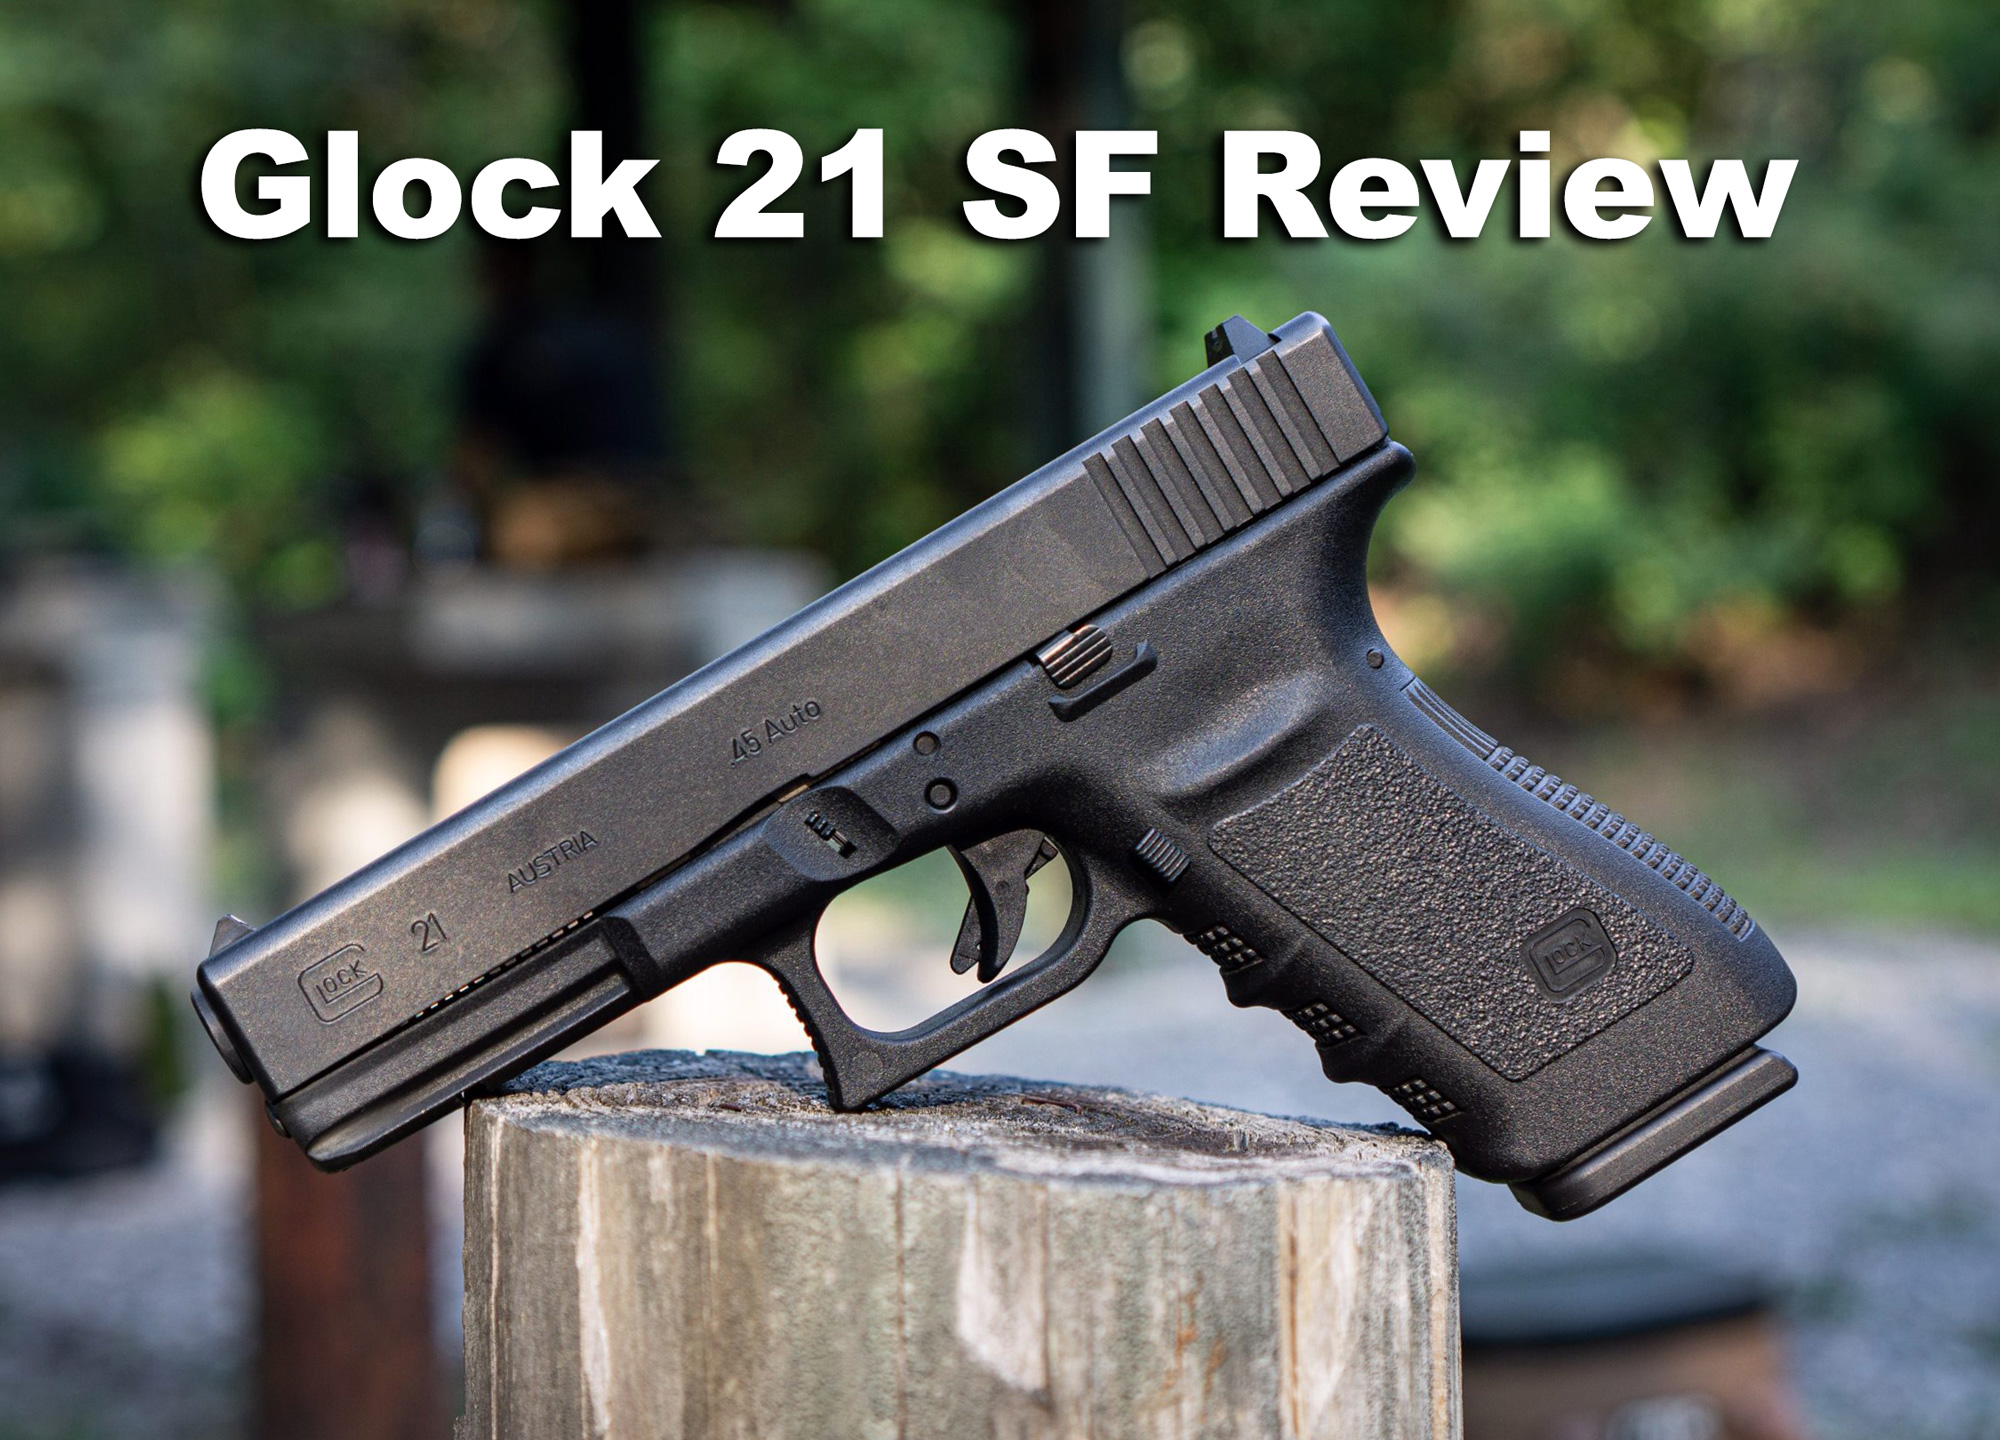 Glock 21 pistol on a ledge that was used for this review.